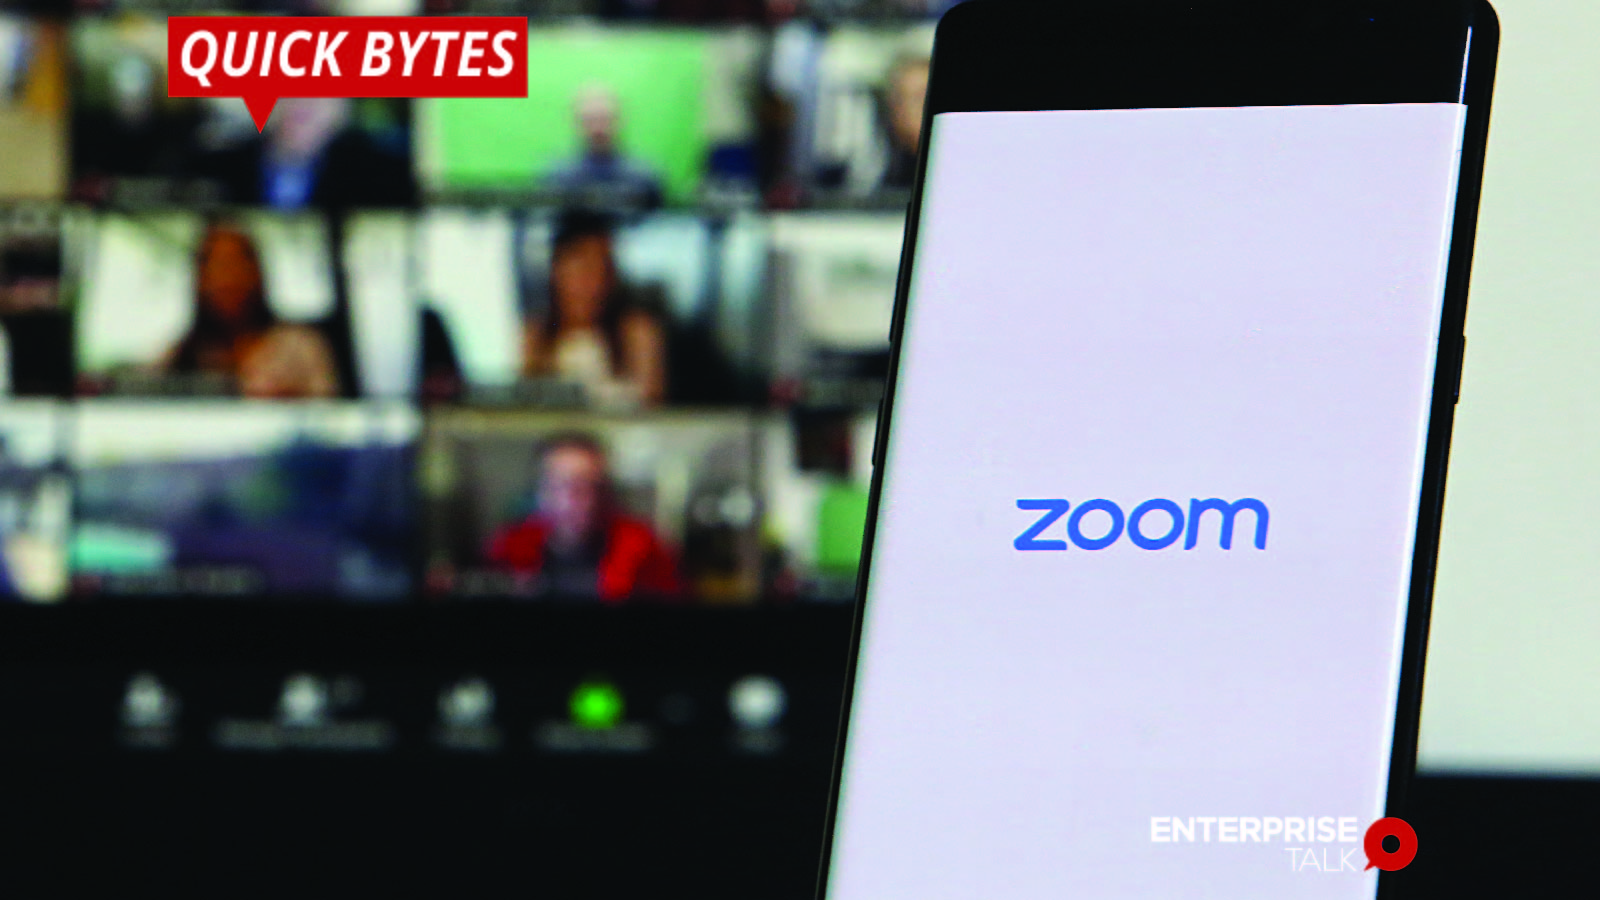 end-to-end encryption, Zoom, acquisition, Keybase, Videoconferencing, security,